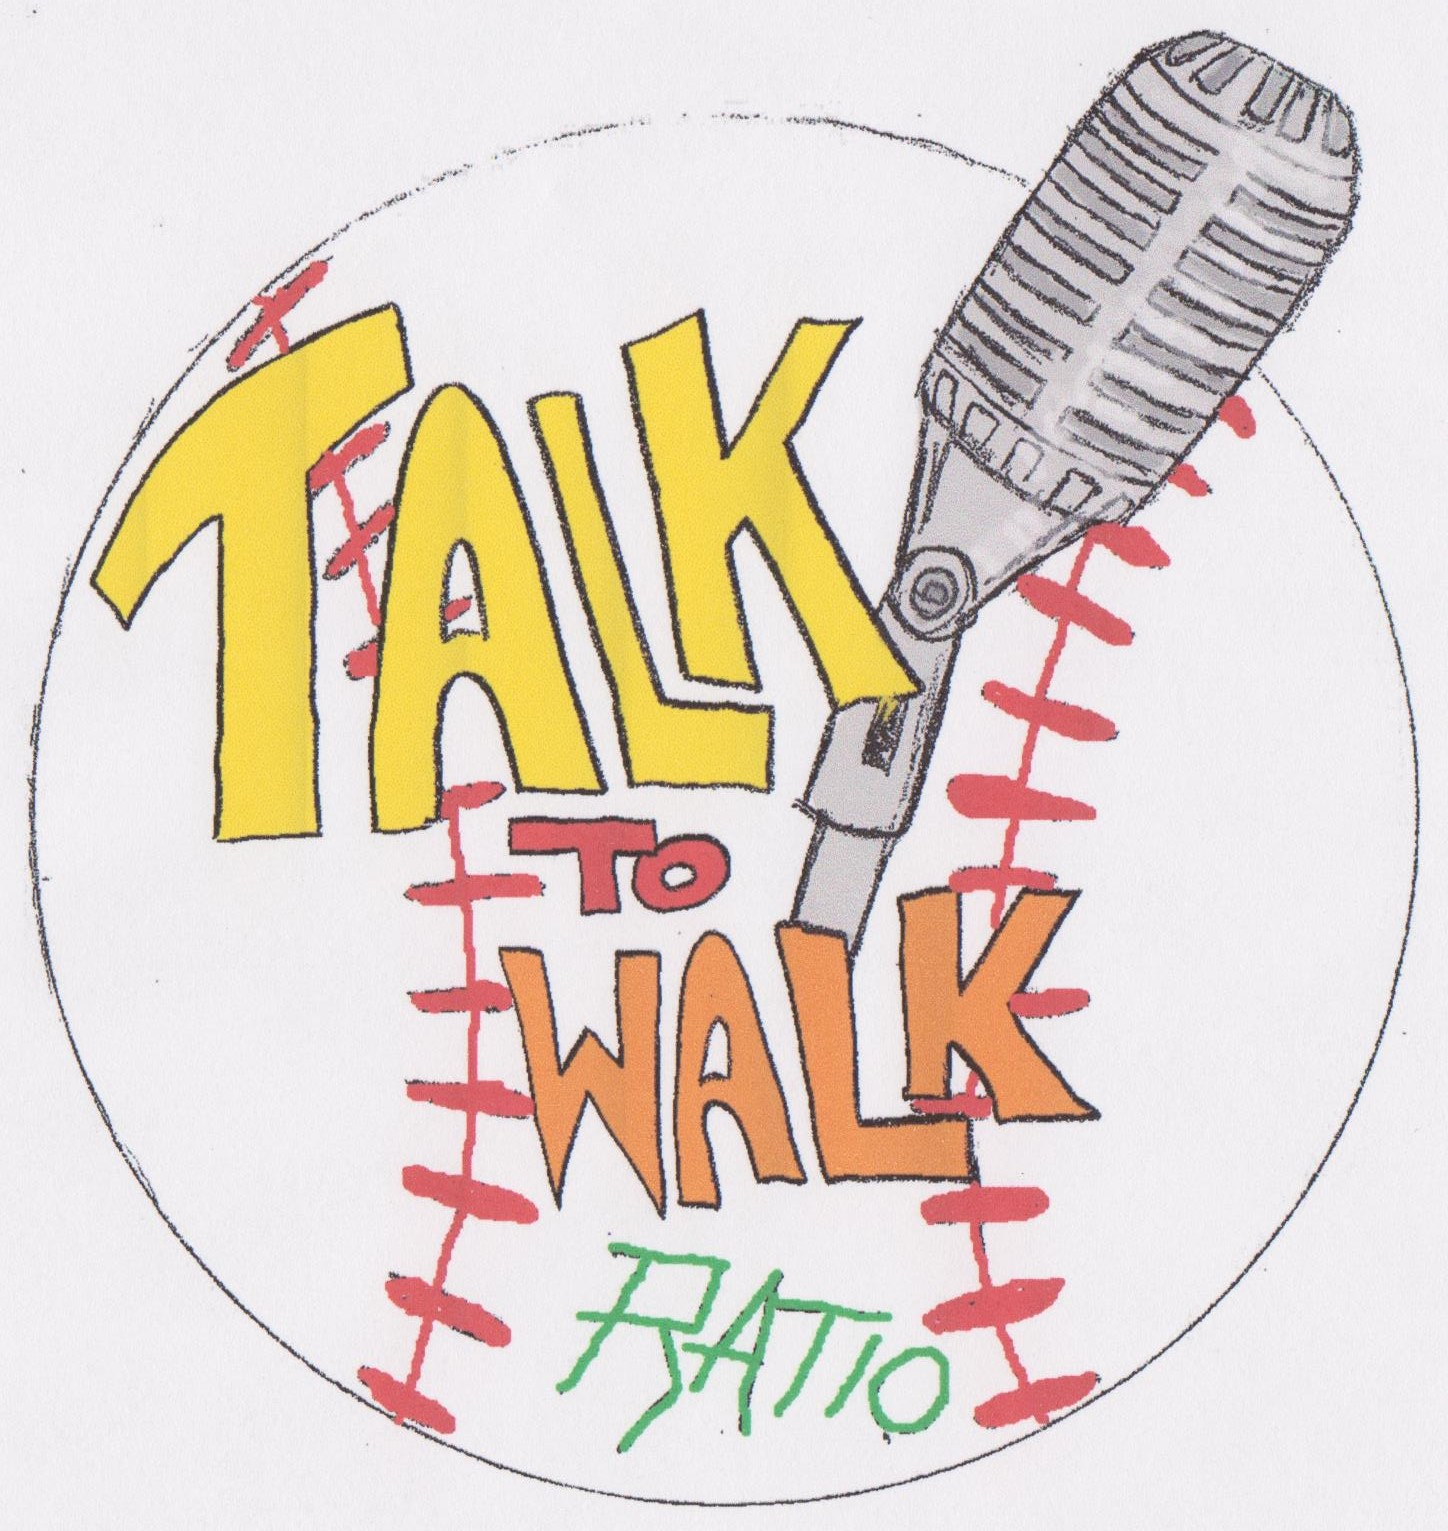 Podcasts – Talk to Walk Ratio